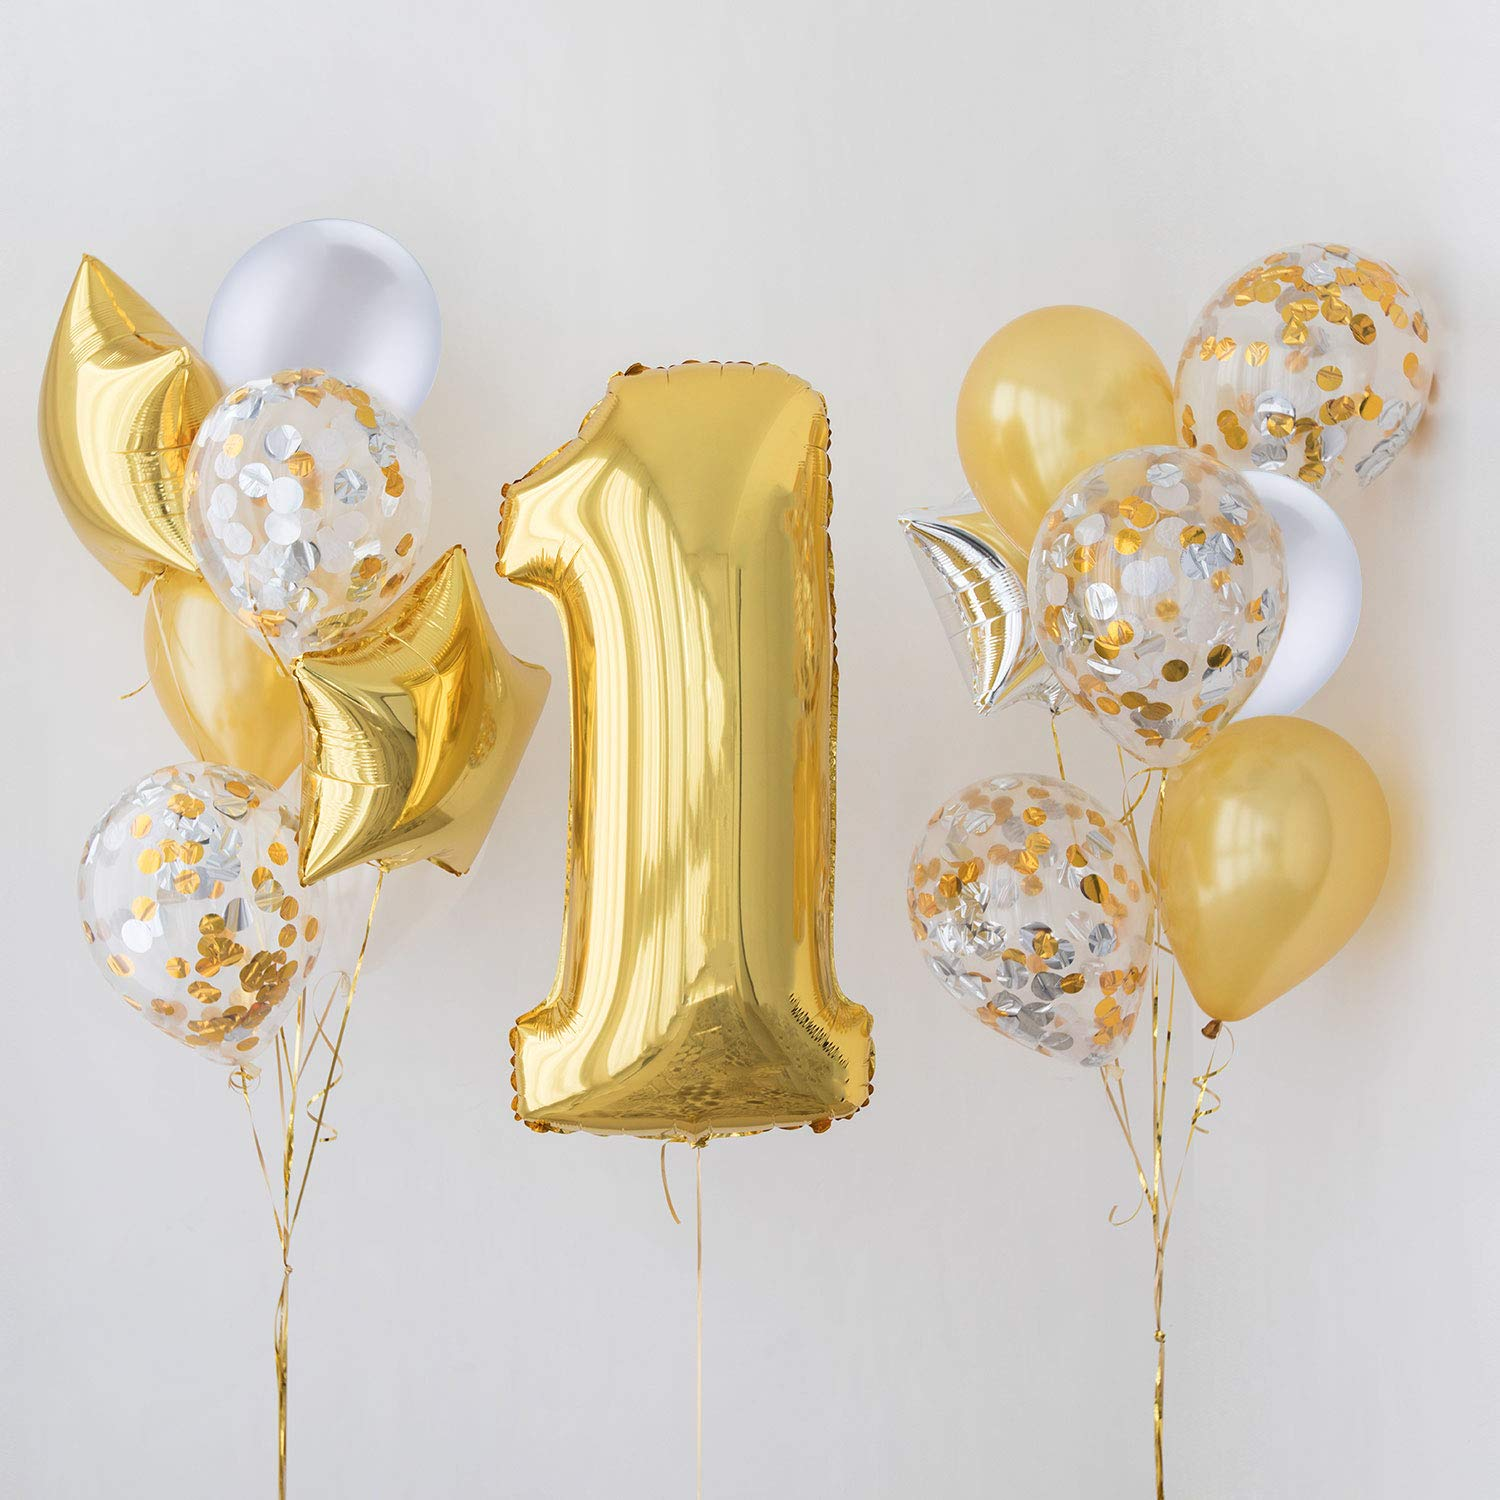 Jovitec 30 Pieces 12 Inches Latex Balloons Confetti Balloons for Wedding Birthday Party Decoration White and Pink